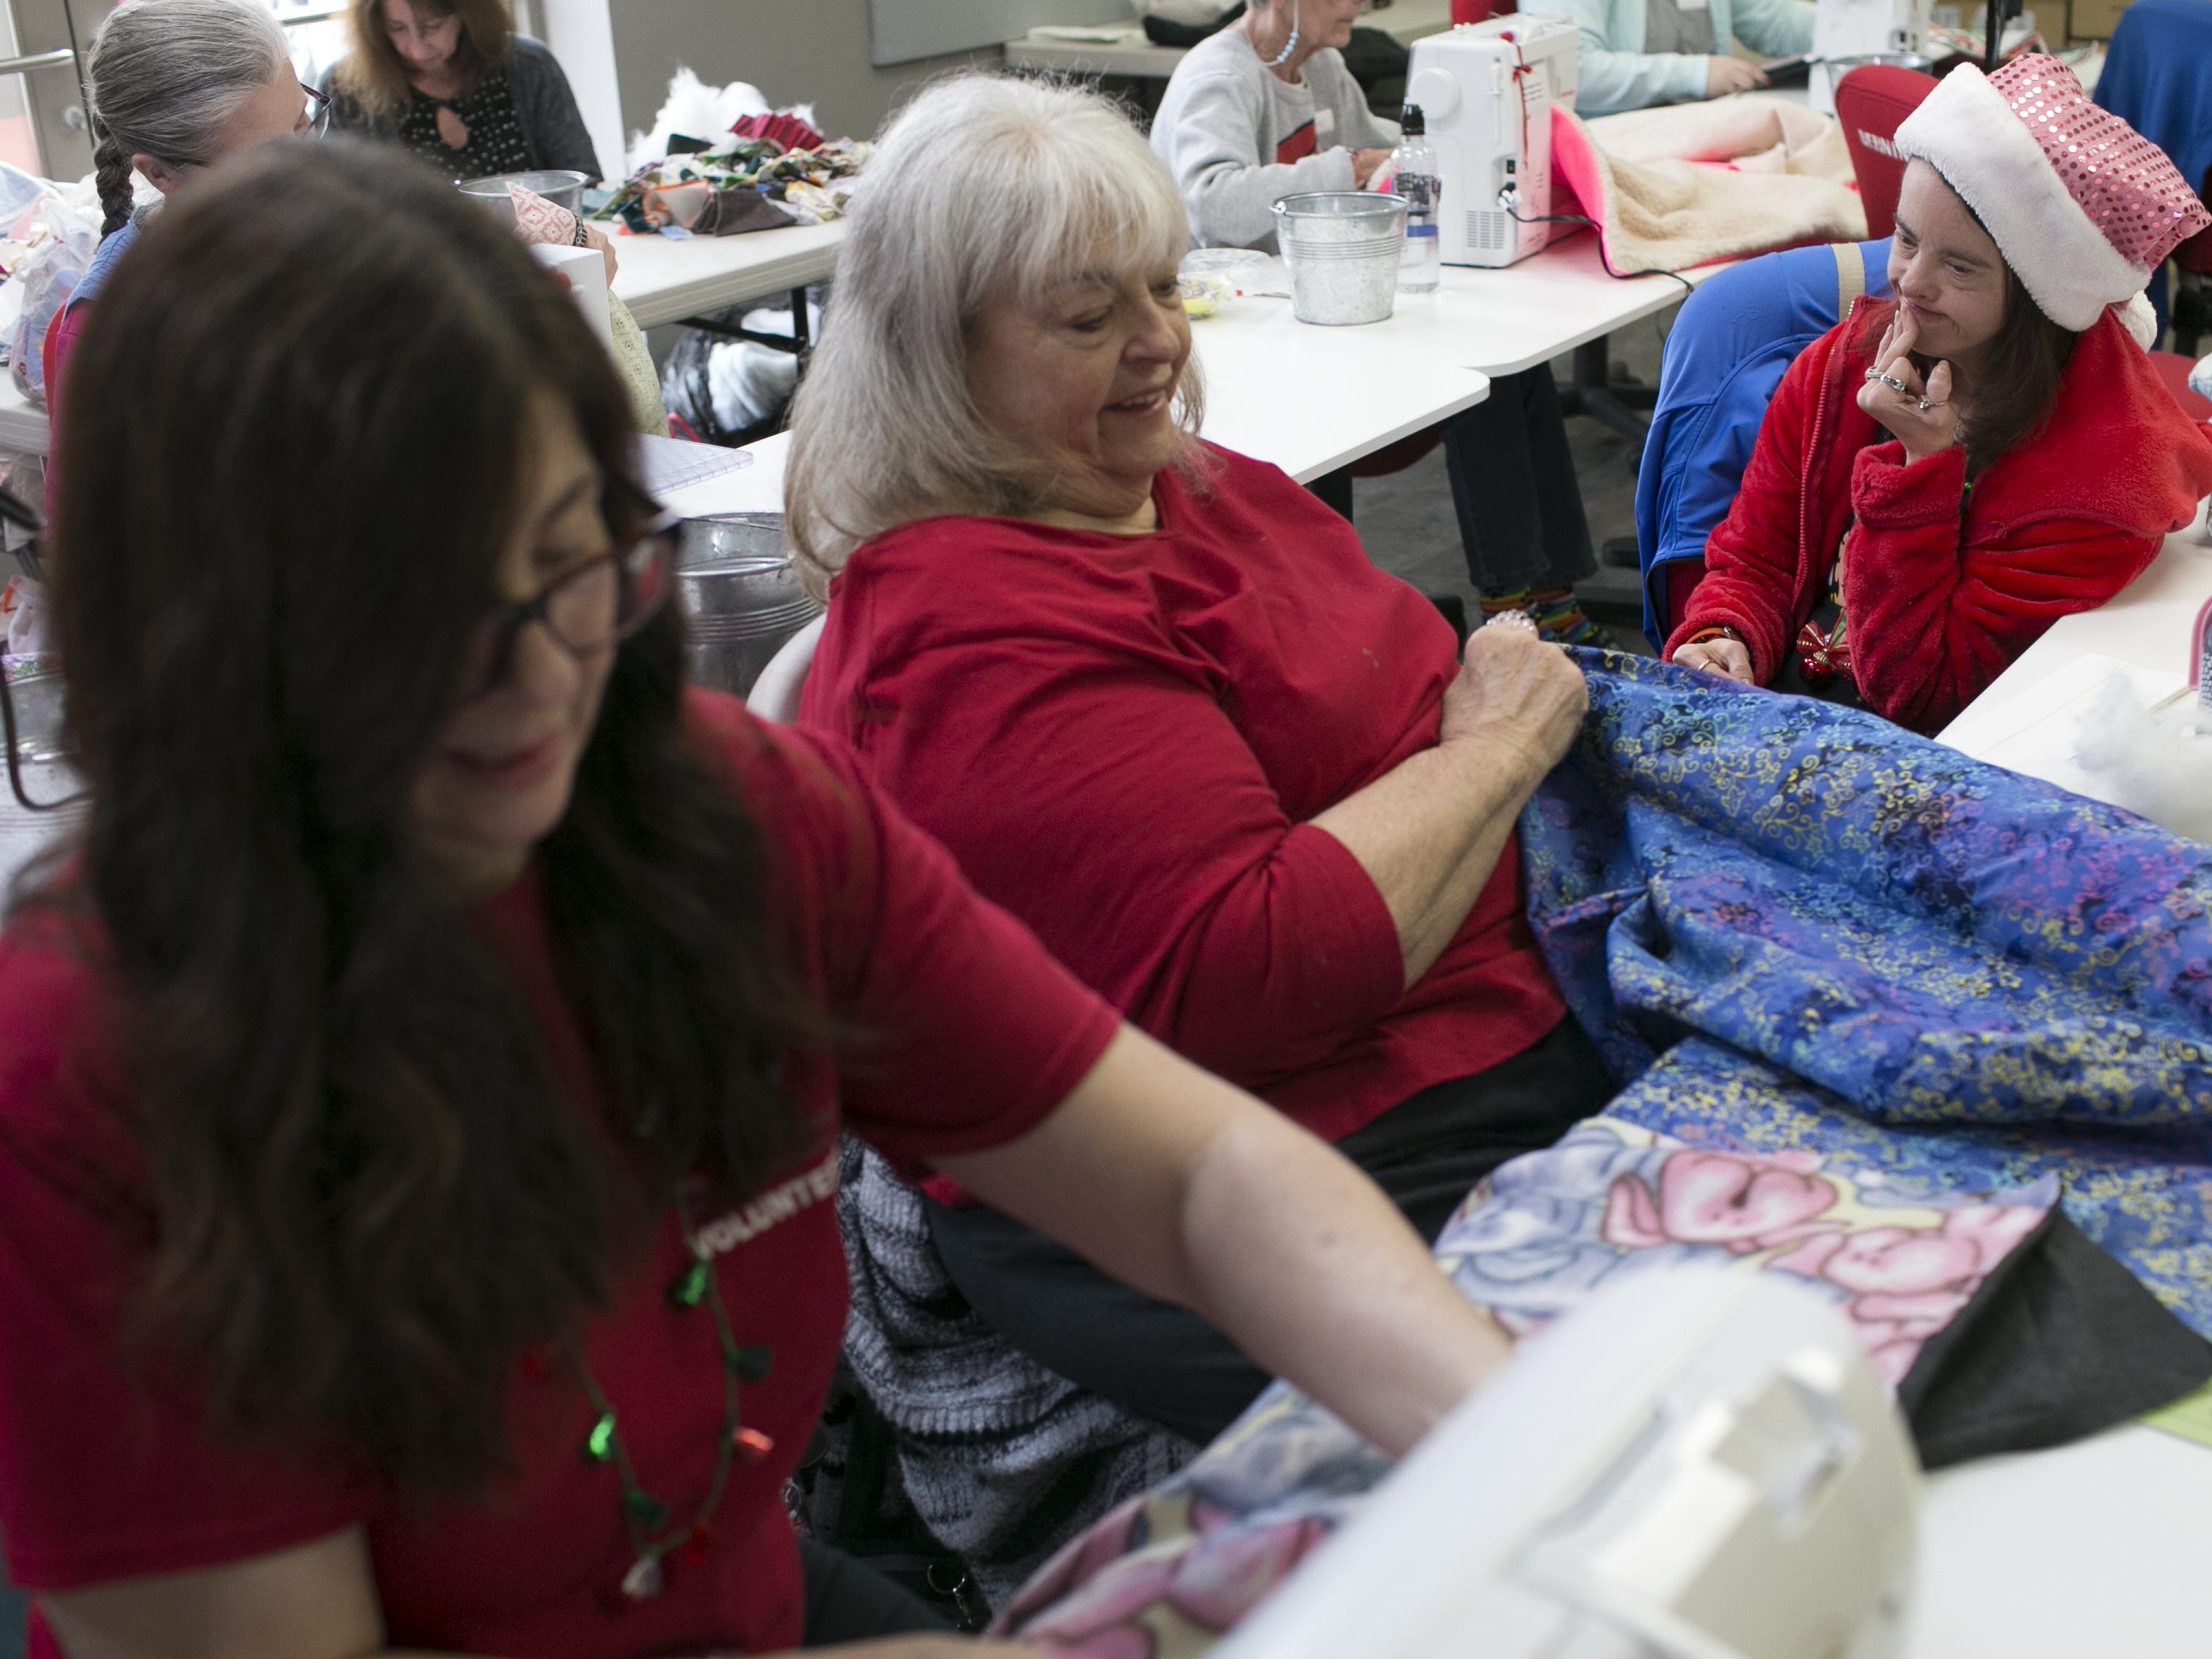 Debbie Lemon (left) teaches a class on how to make dog beds for animal shelters at the Bernina Connection with her mother, Valerie Friel (center), and her sister, Lindsy Friel (right), joining on Dec. 15, 2018, at the Bernina Connection.